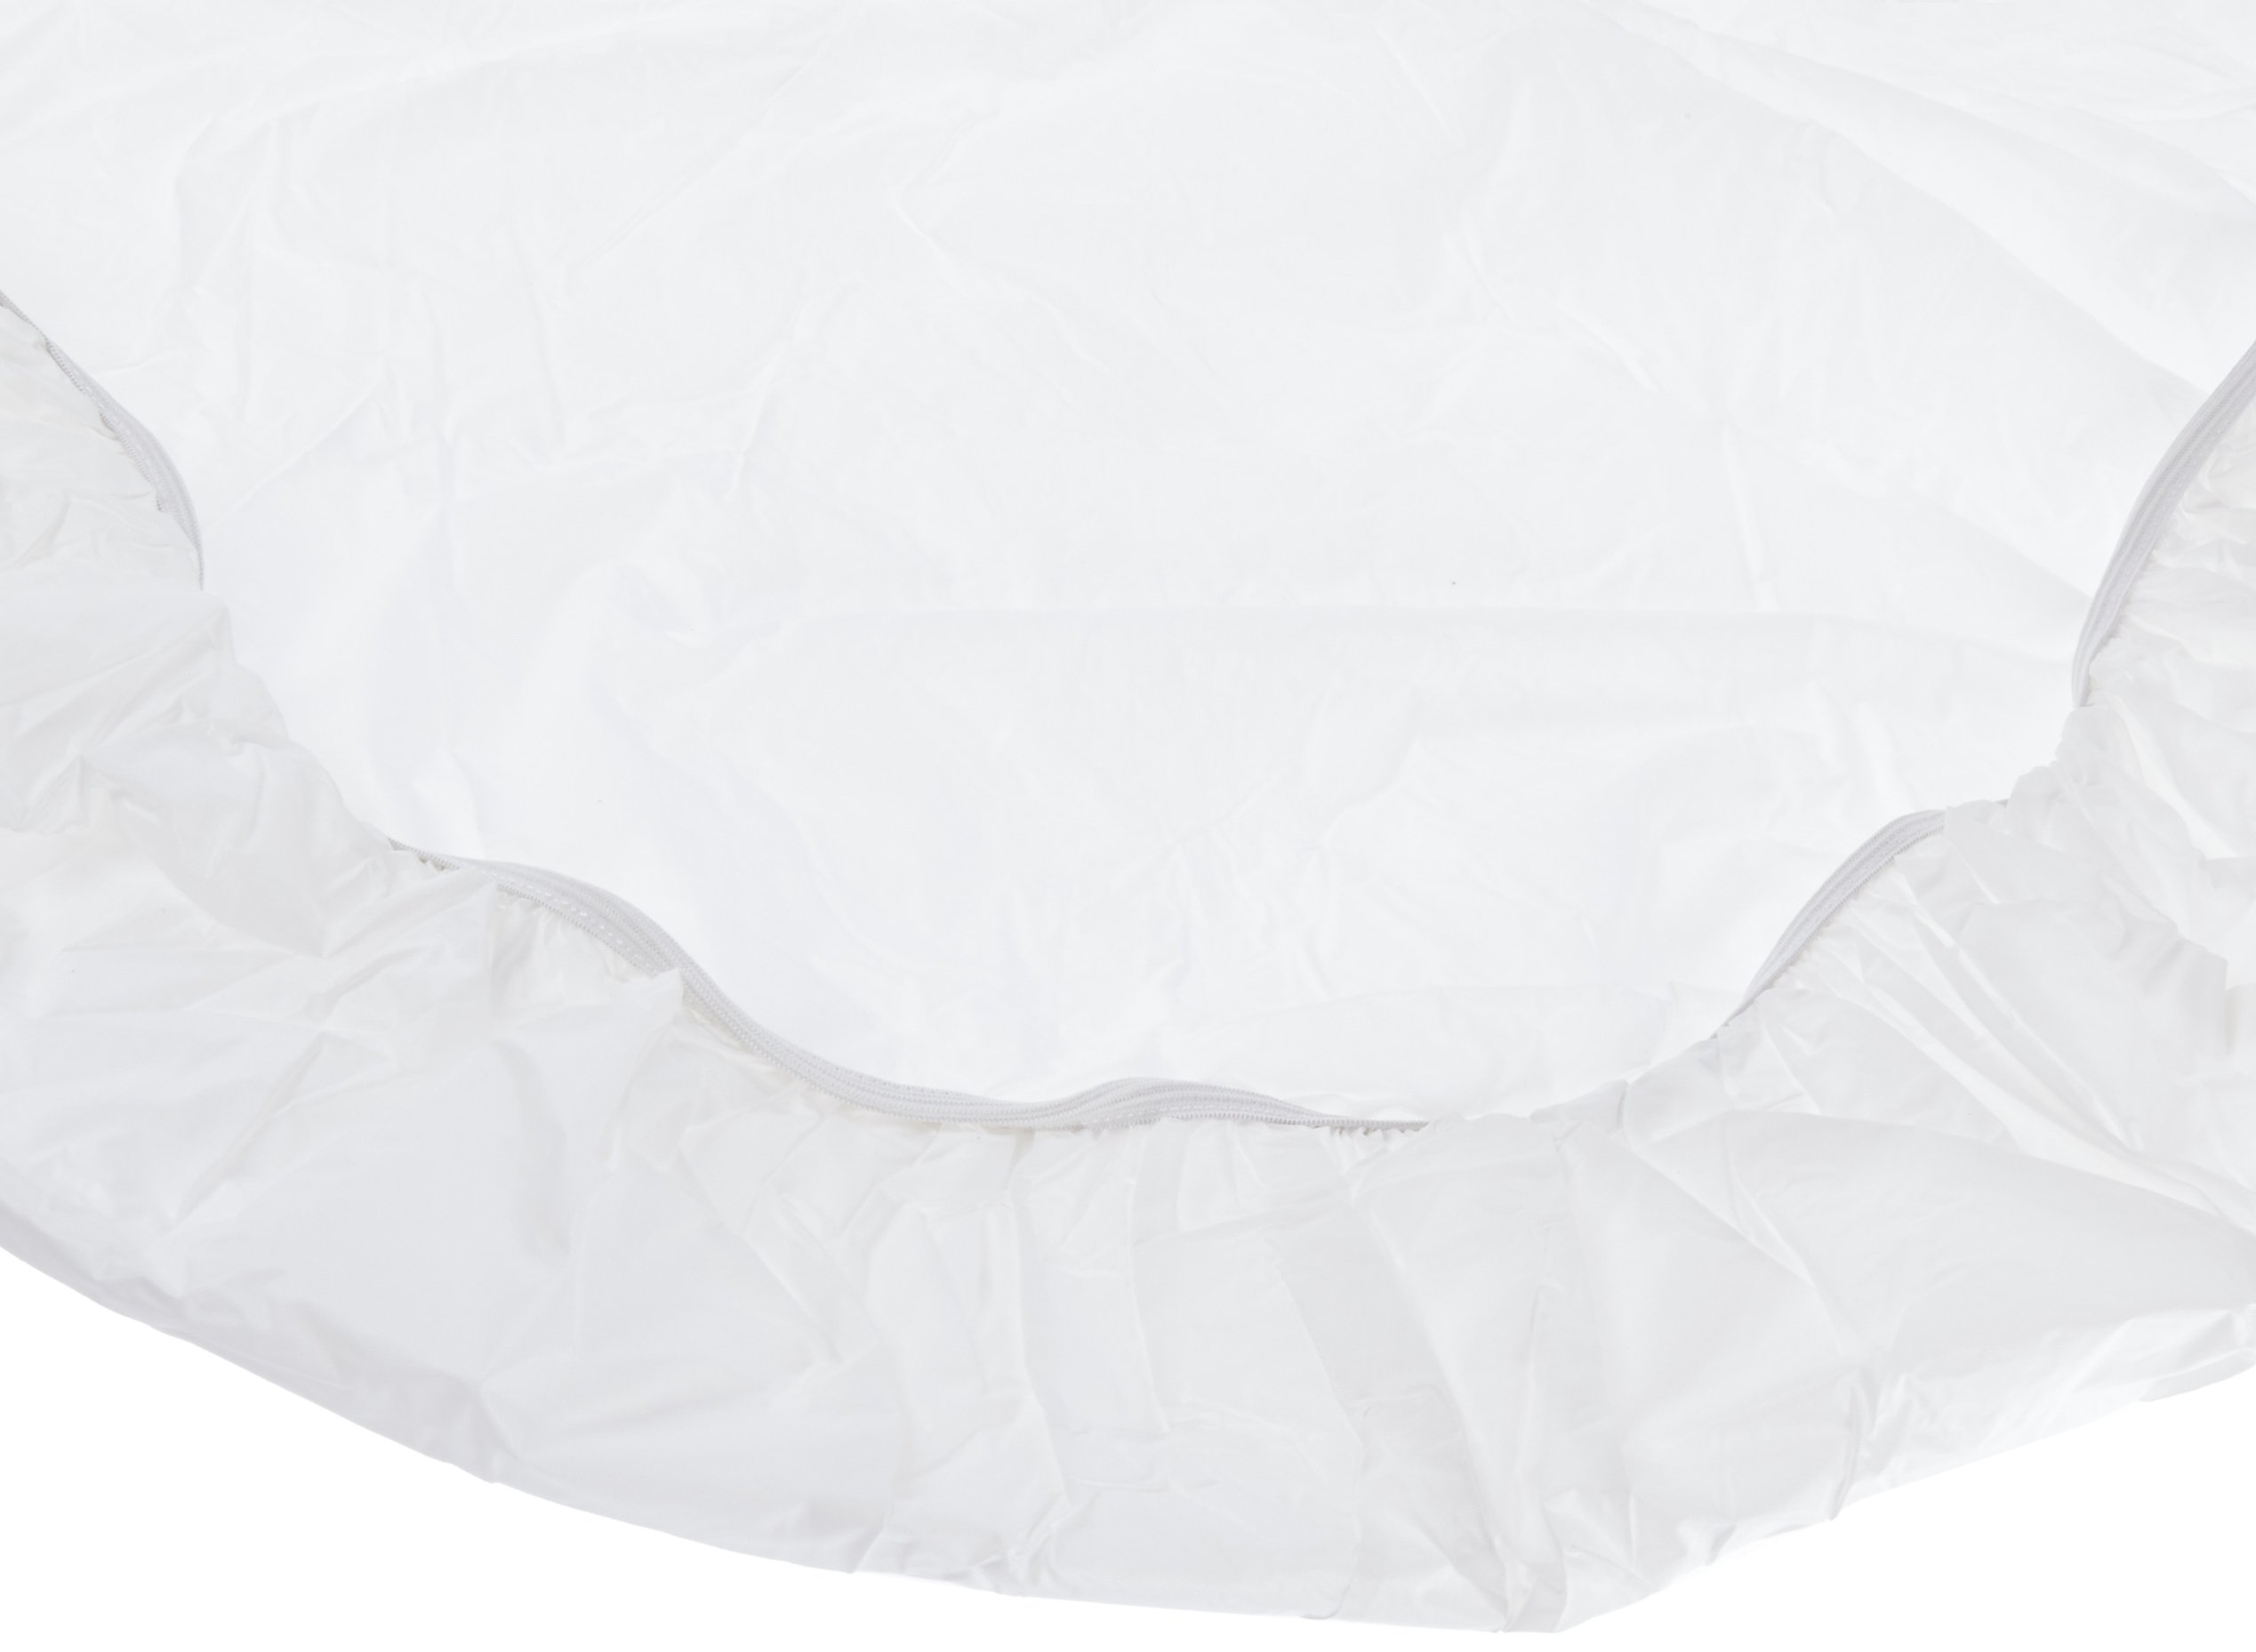 Kwik-Cover 48UM-W 48'' Round UMBRELLA Kwik-Cover- White Fitted Table Cover (1 full case of 100)